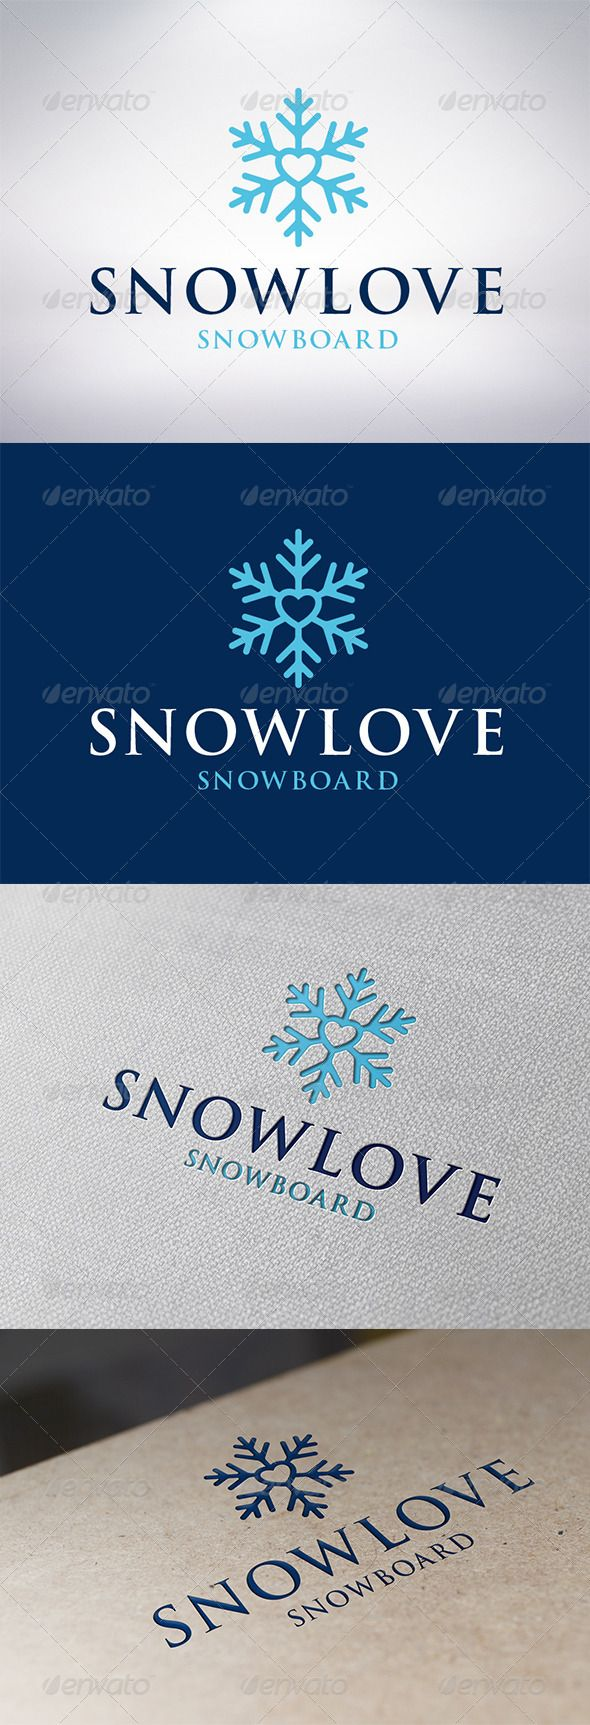 snow senior singles Join the largest christian dating site sign up for free and connect with other christian singles looking for love based on faith.